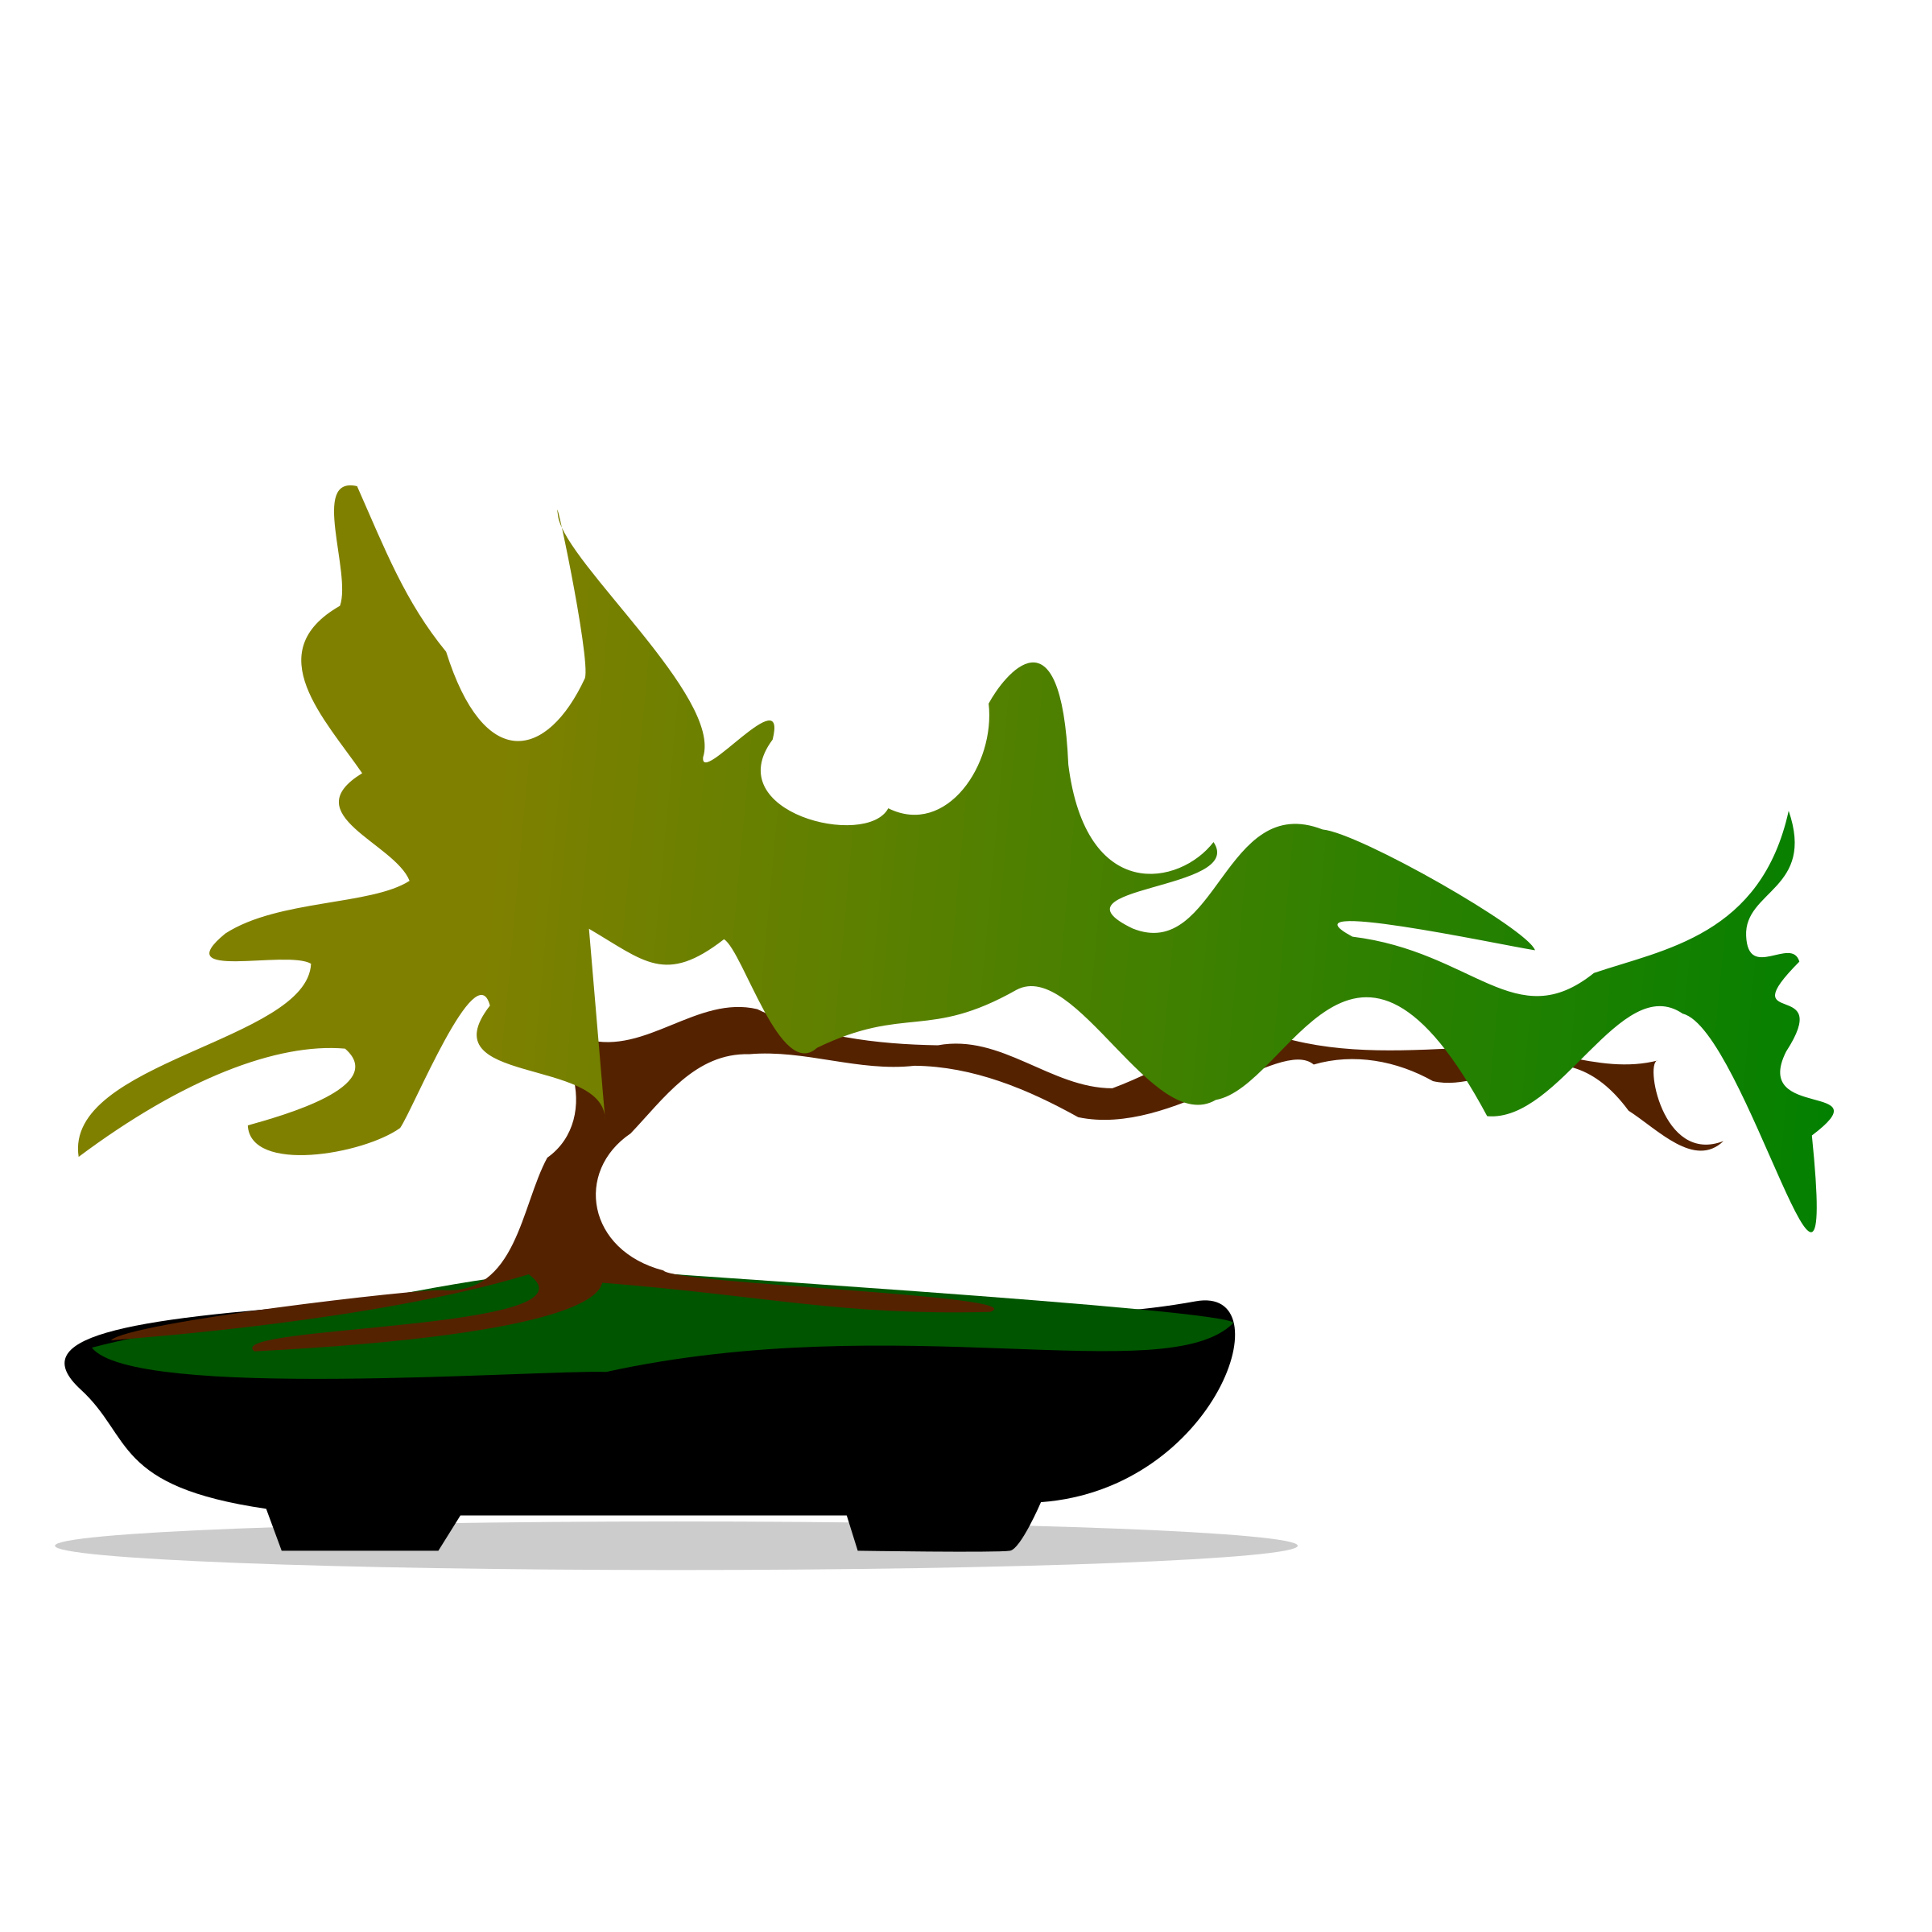 Bonsai tree clipart.